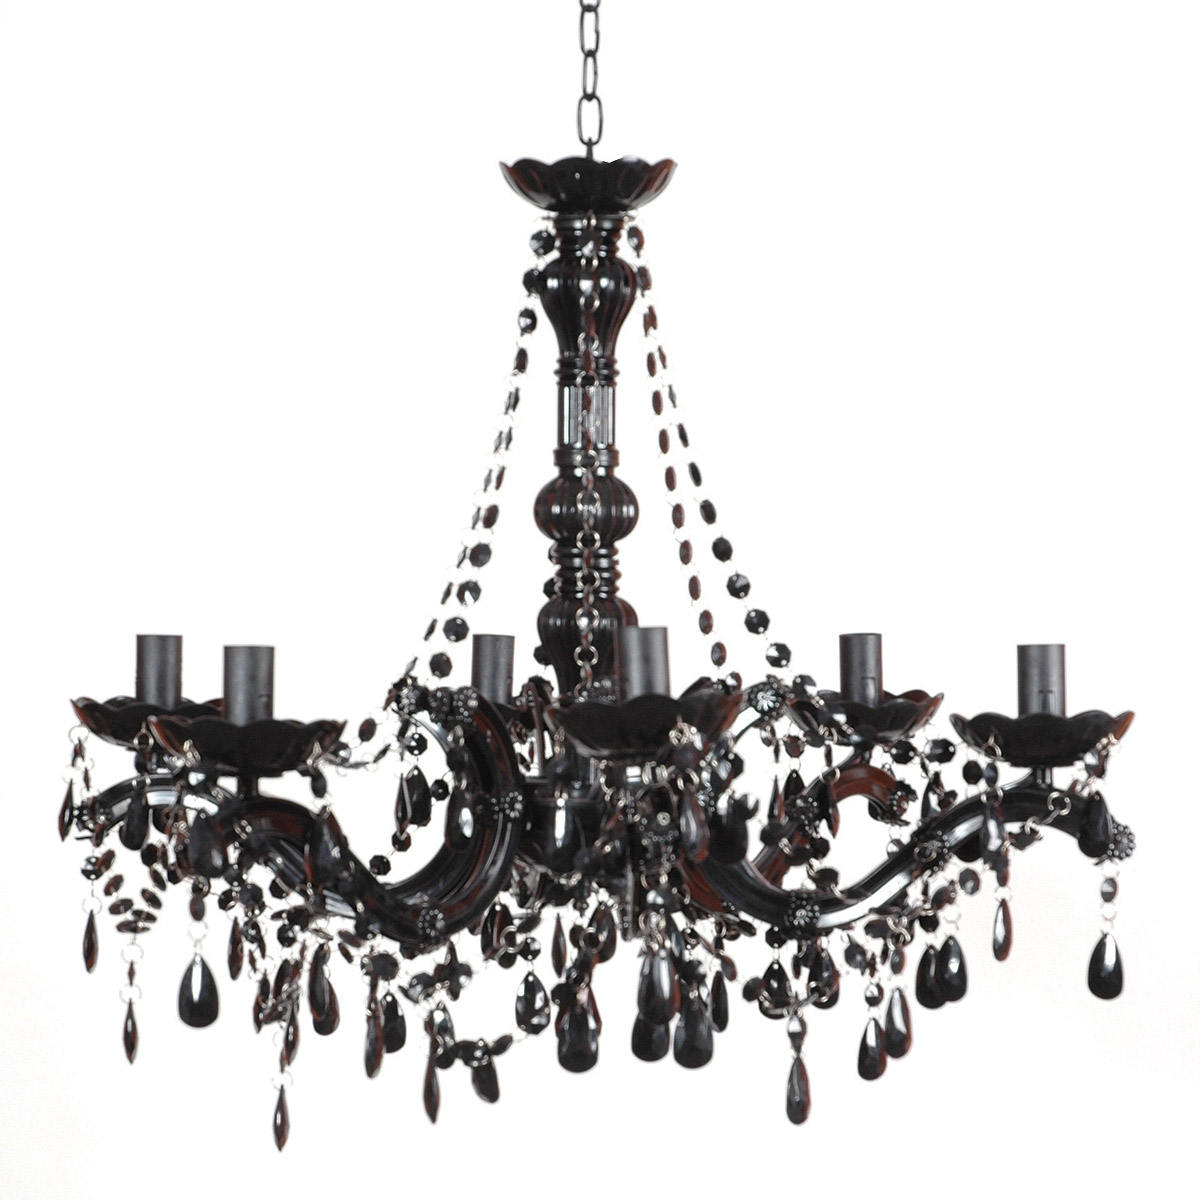 Black Chandeliers For And Chandelier Bedroom Modern Crystal Home Intended For Black Chandelier (View 15 of 15)